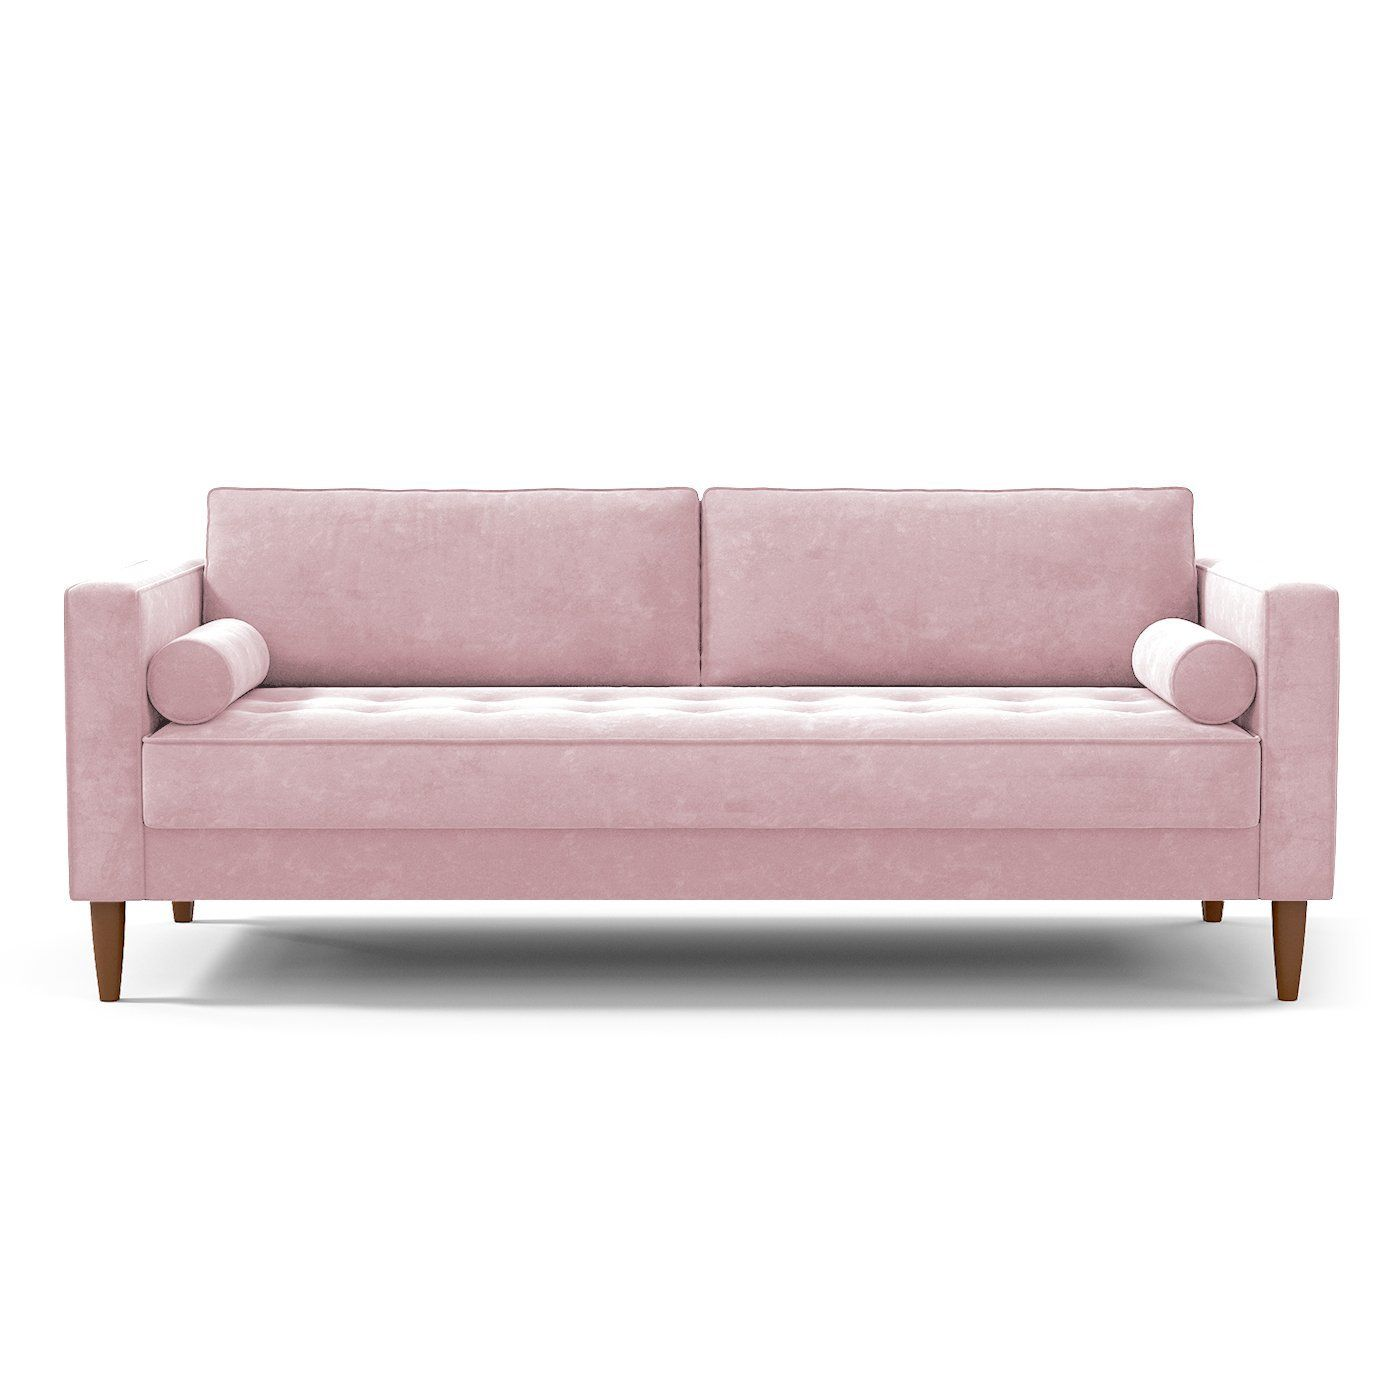 Yellow Sofa Online India 16 Best Online Furniture Stores Best Websites For Buying Furniture